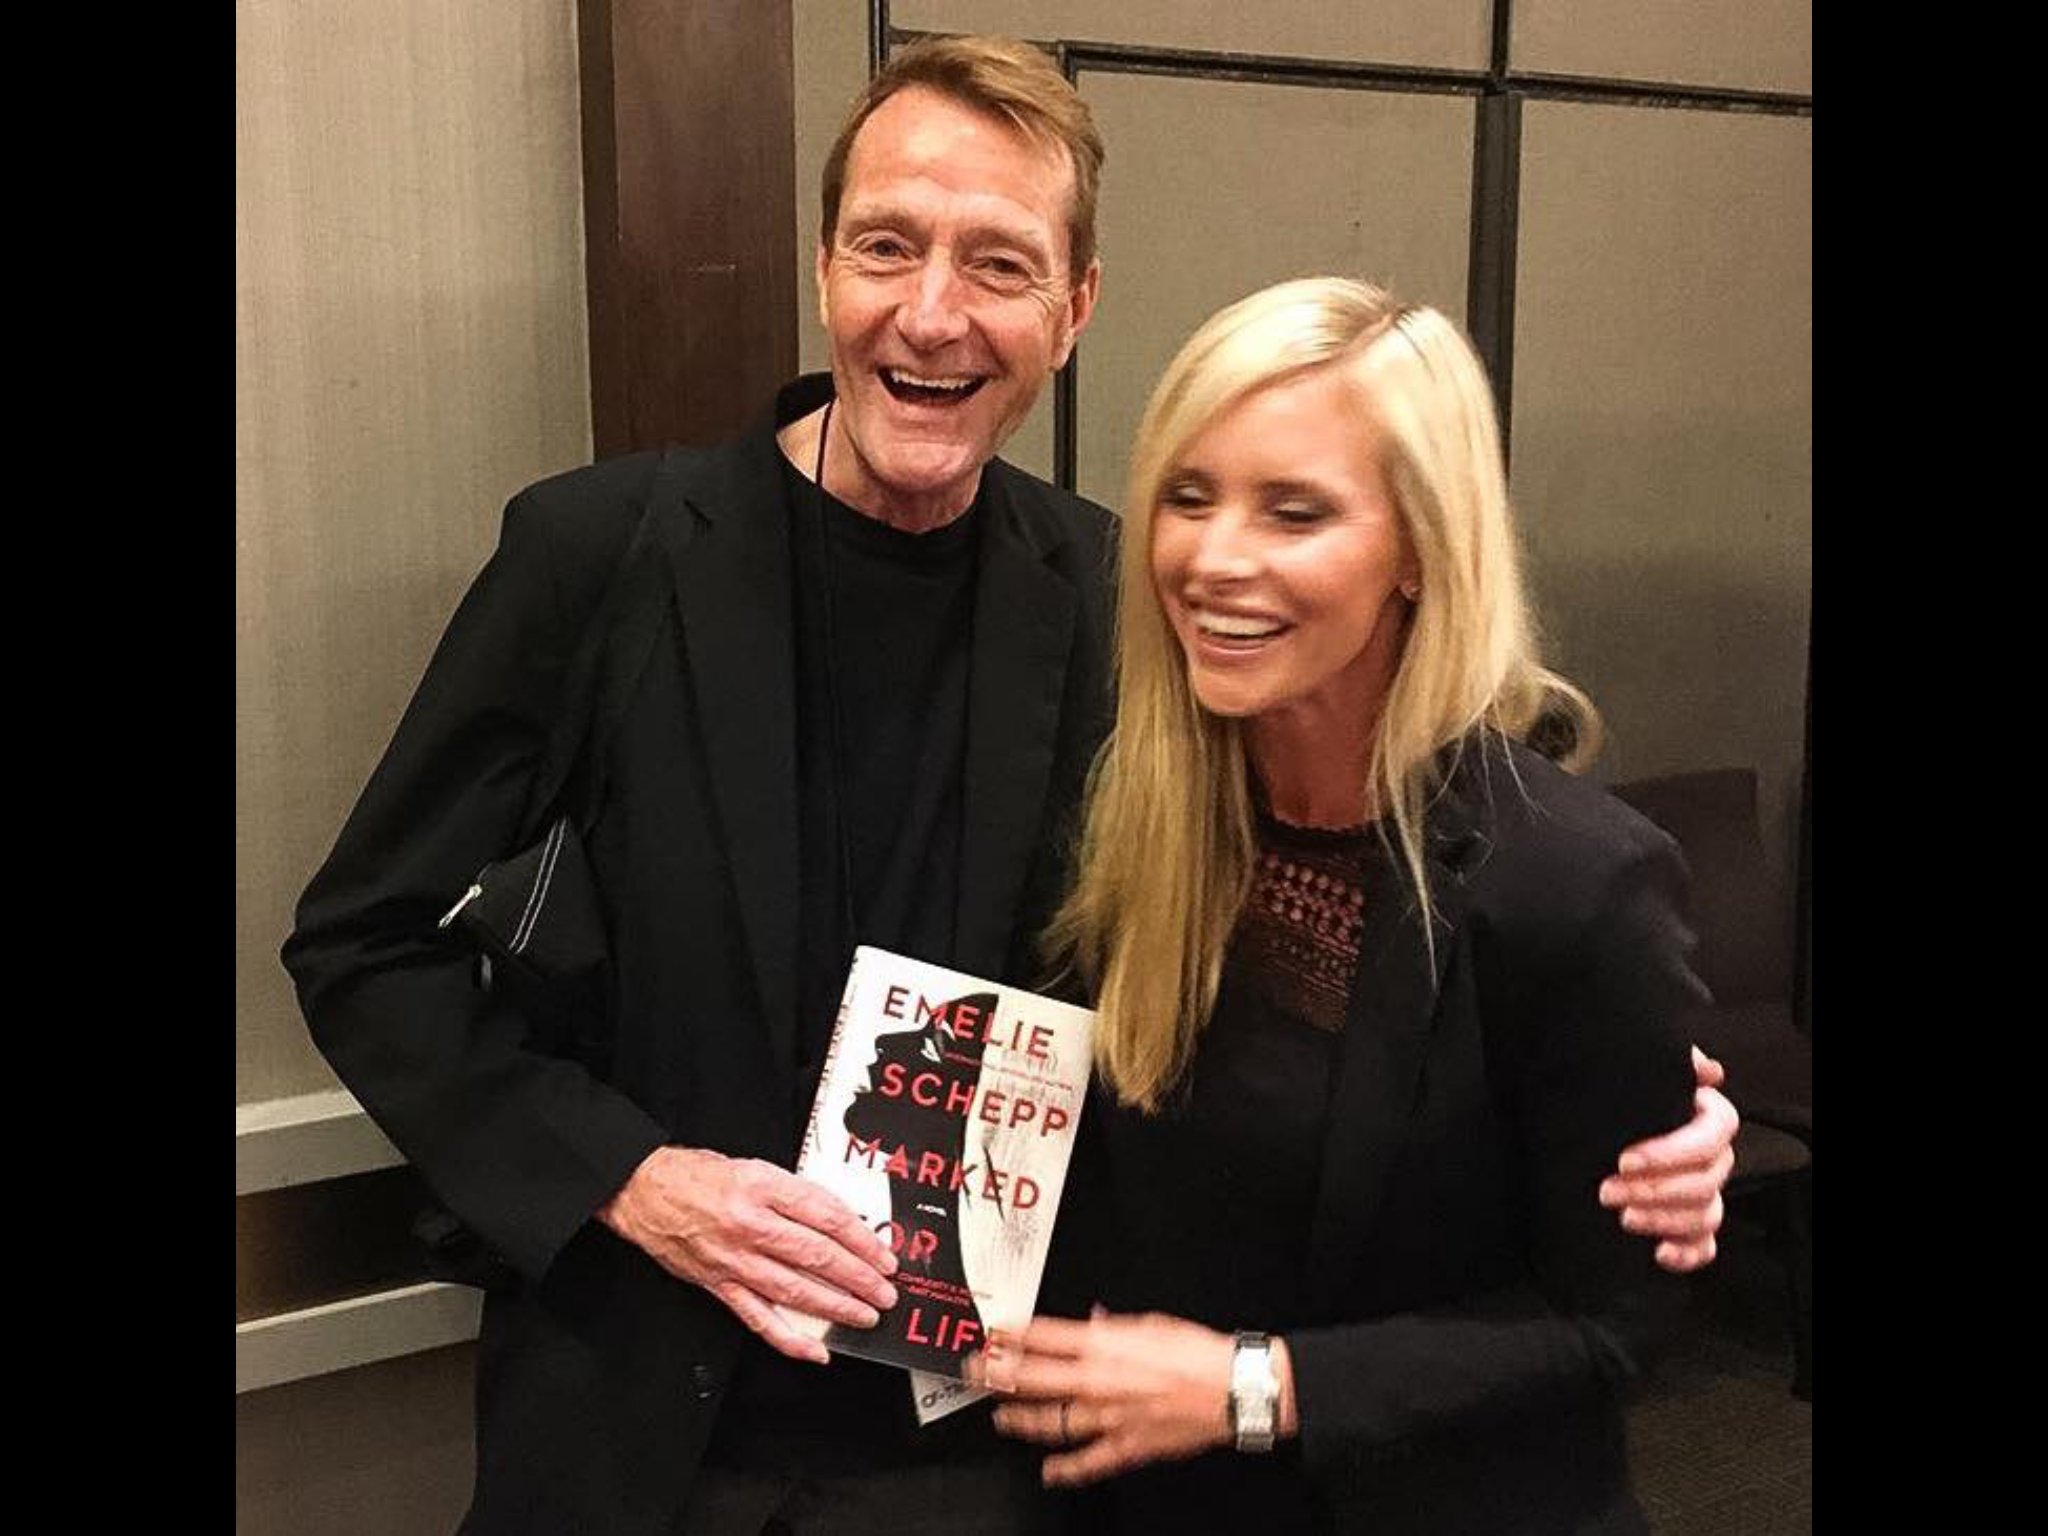 Emelie and Lee Child